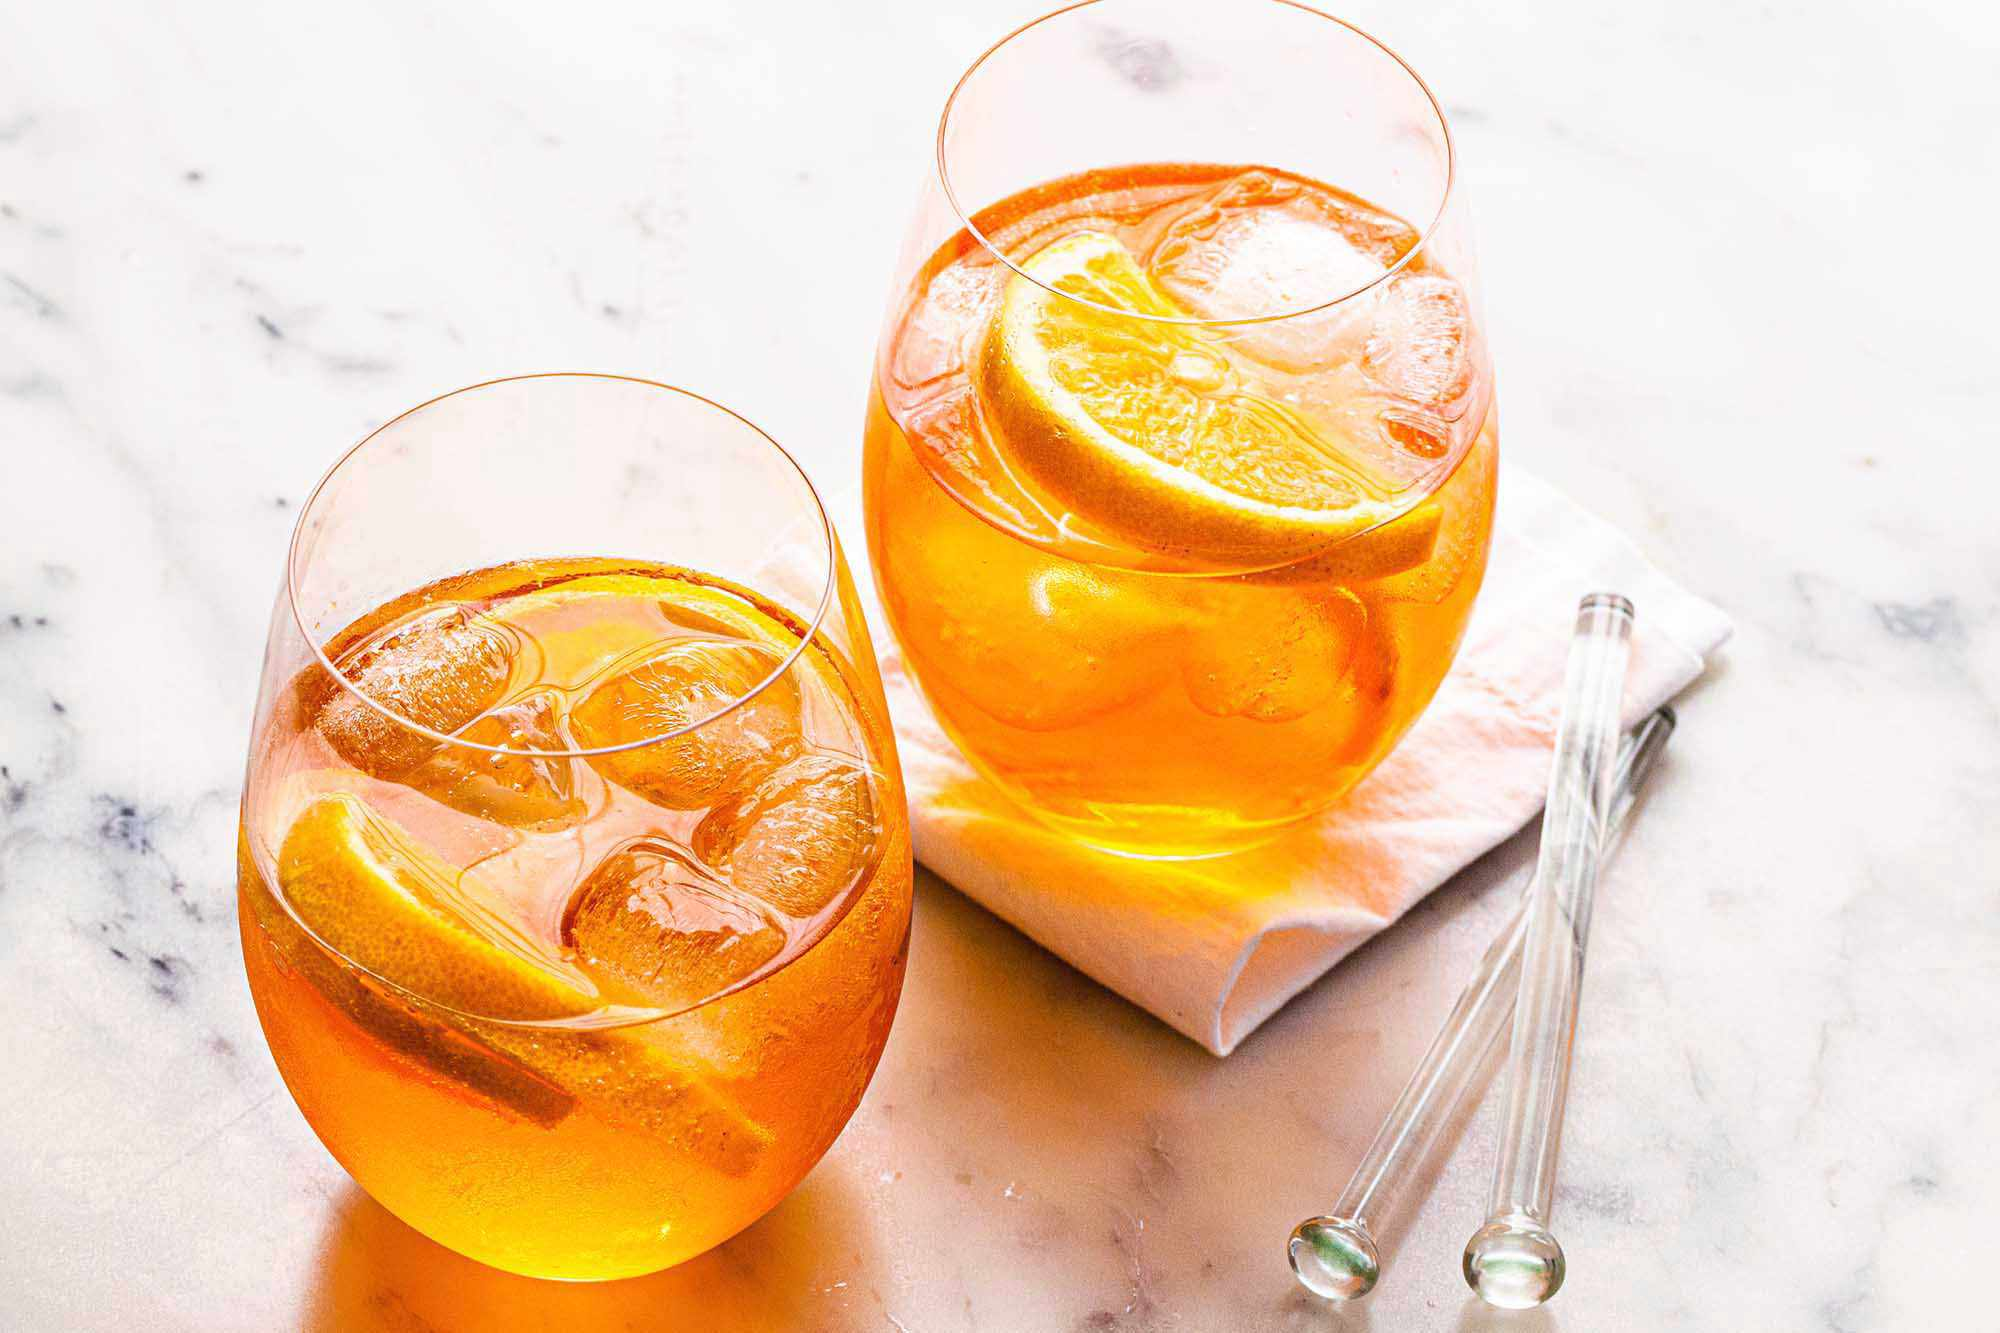 Two Aperol spritz cocktails on a table with ice and orange slices, a napkin and two stir sticks to the right.